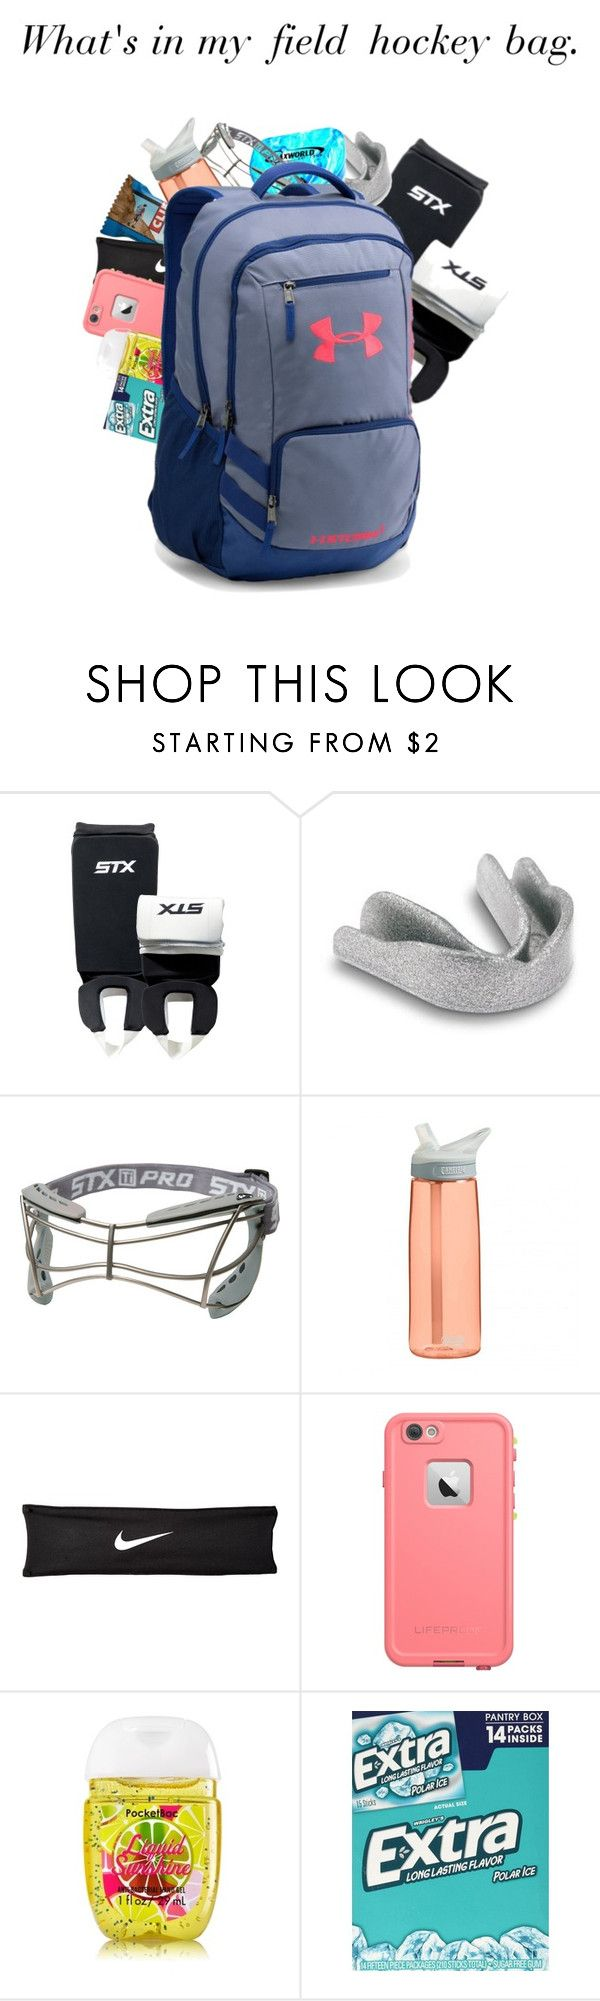 """""""What's in my field hockey bag. (plus my stick)"""" by keileeen ❤ liked on Polyvore featuring Shin Choi, CamelBak, NIKE, LifeProof, Wrigley's and Under Armour"""